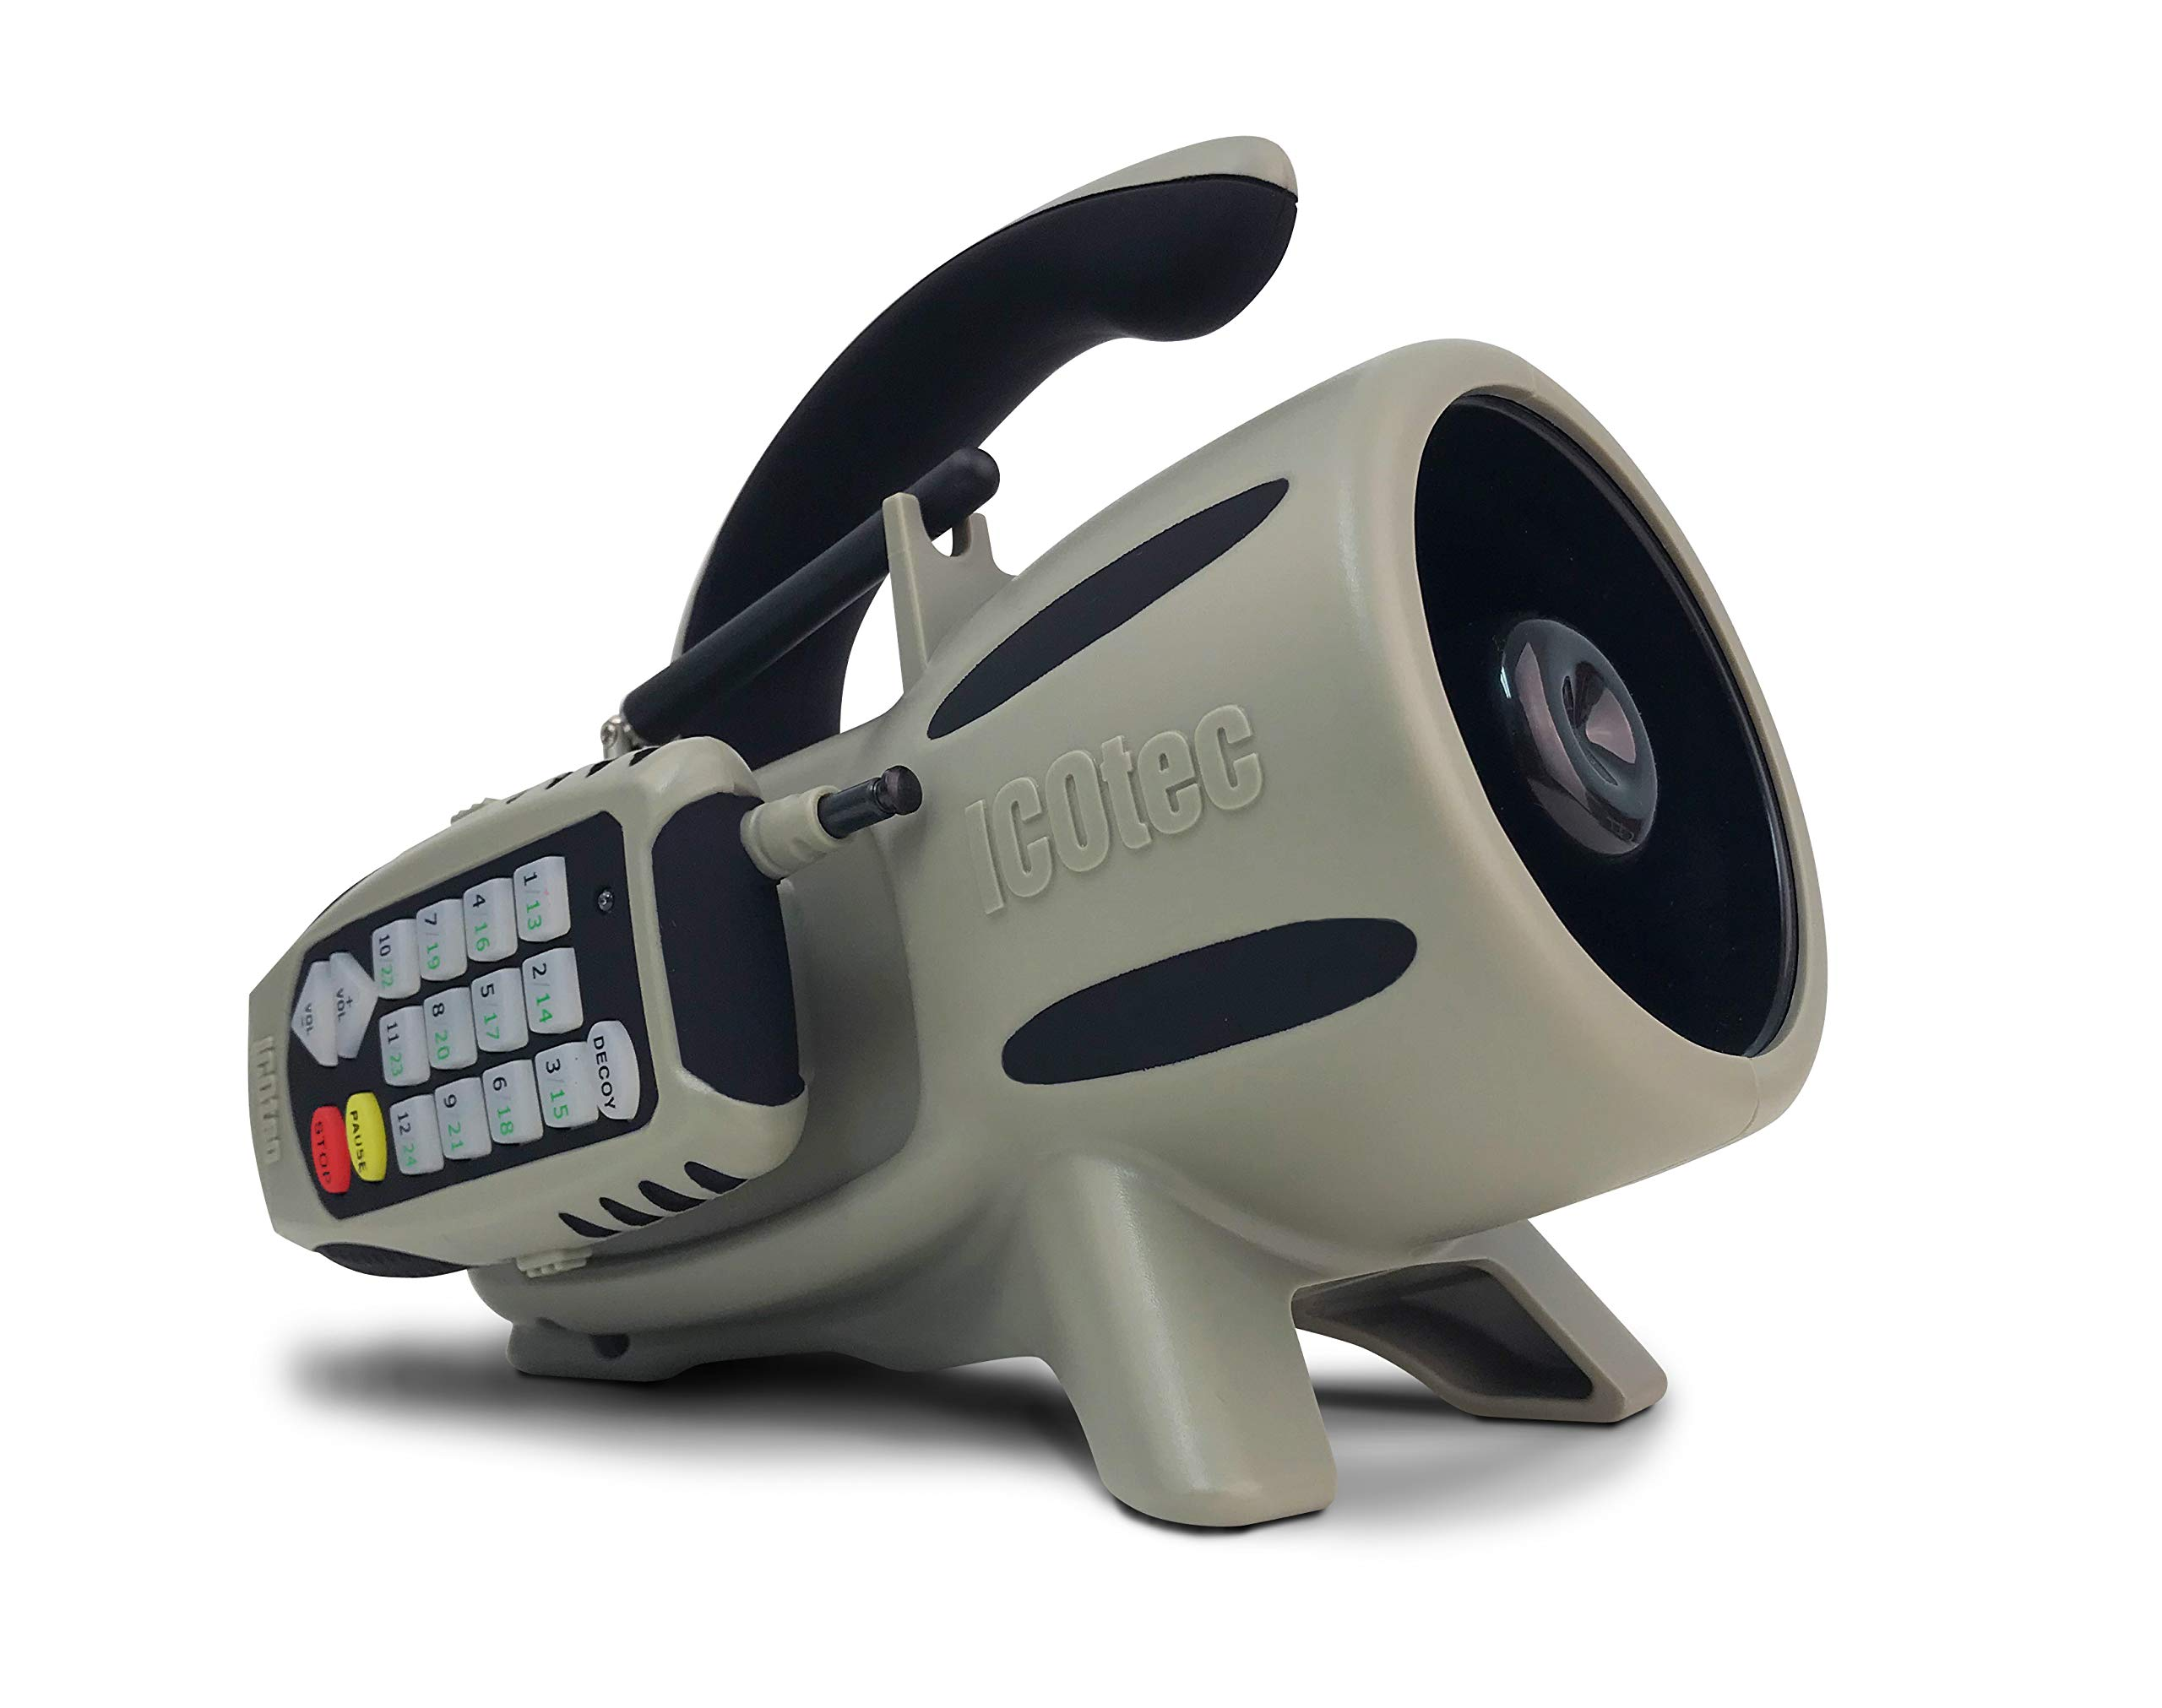 Icotec GEN2 GC350 Programmable Game Call - 24 call capacity by Icotec